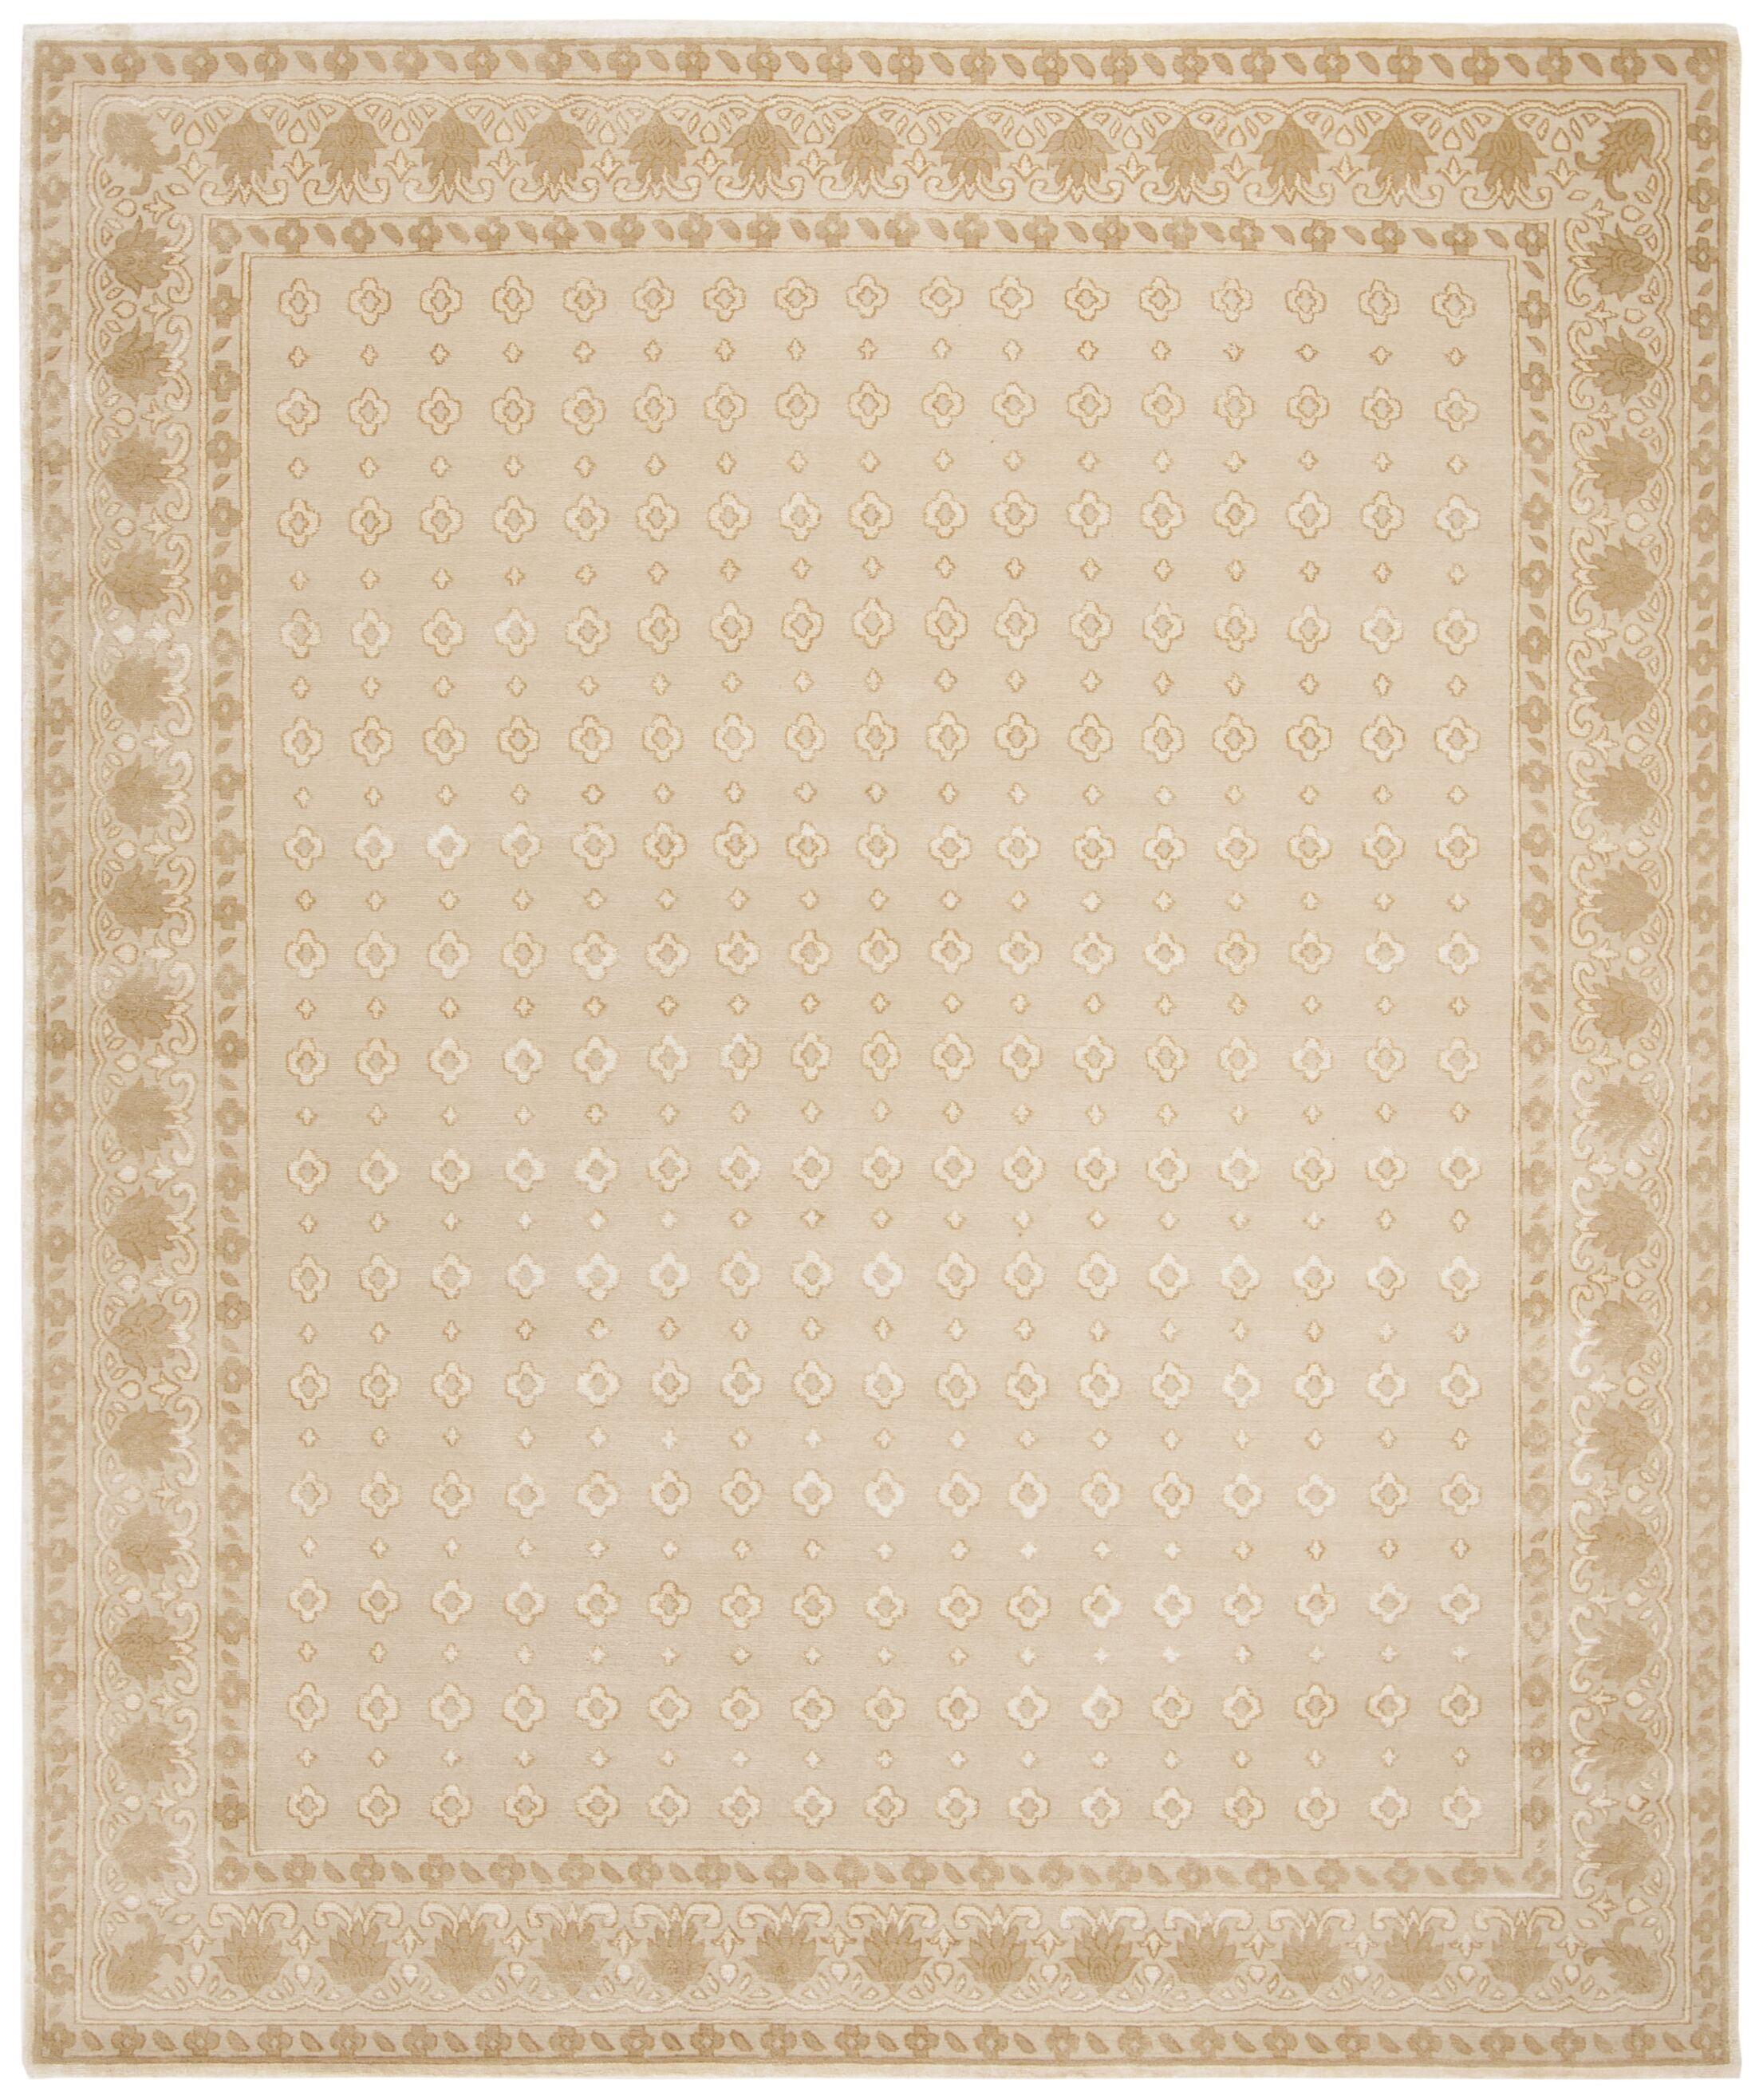 Berta Hand-Knotted Cream Area Rug Rug Size: 8' x 10'